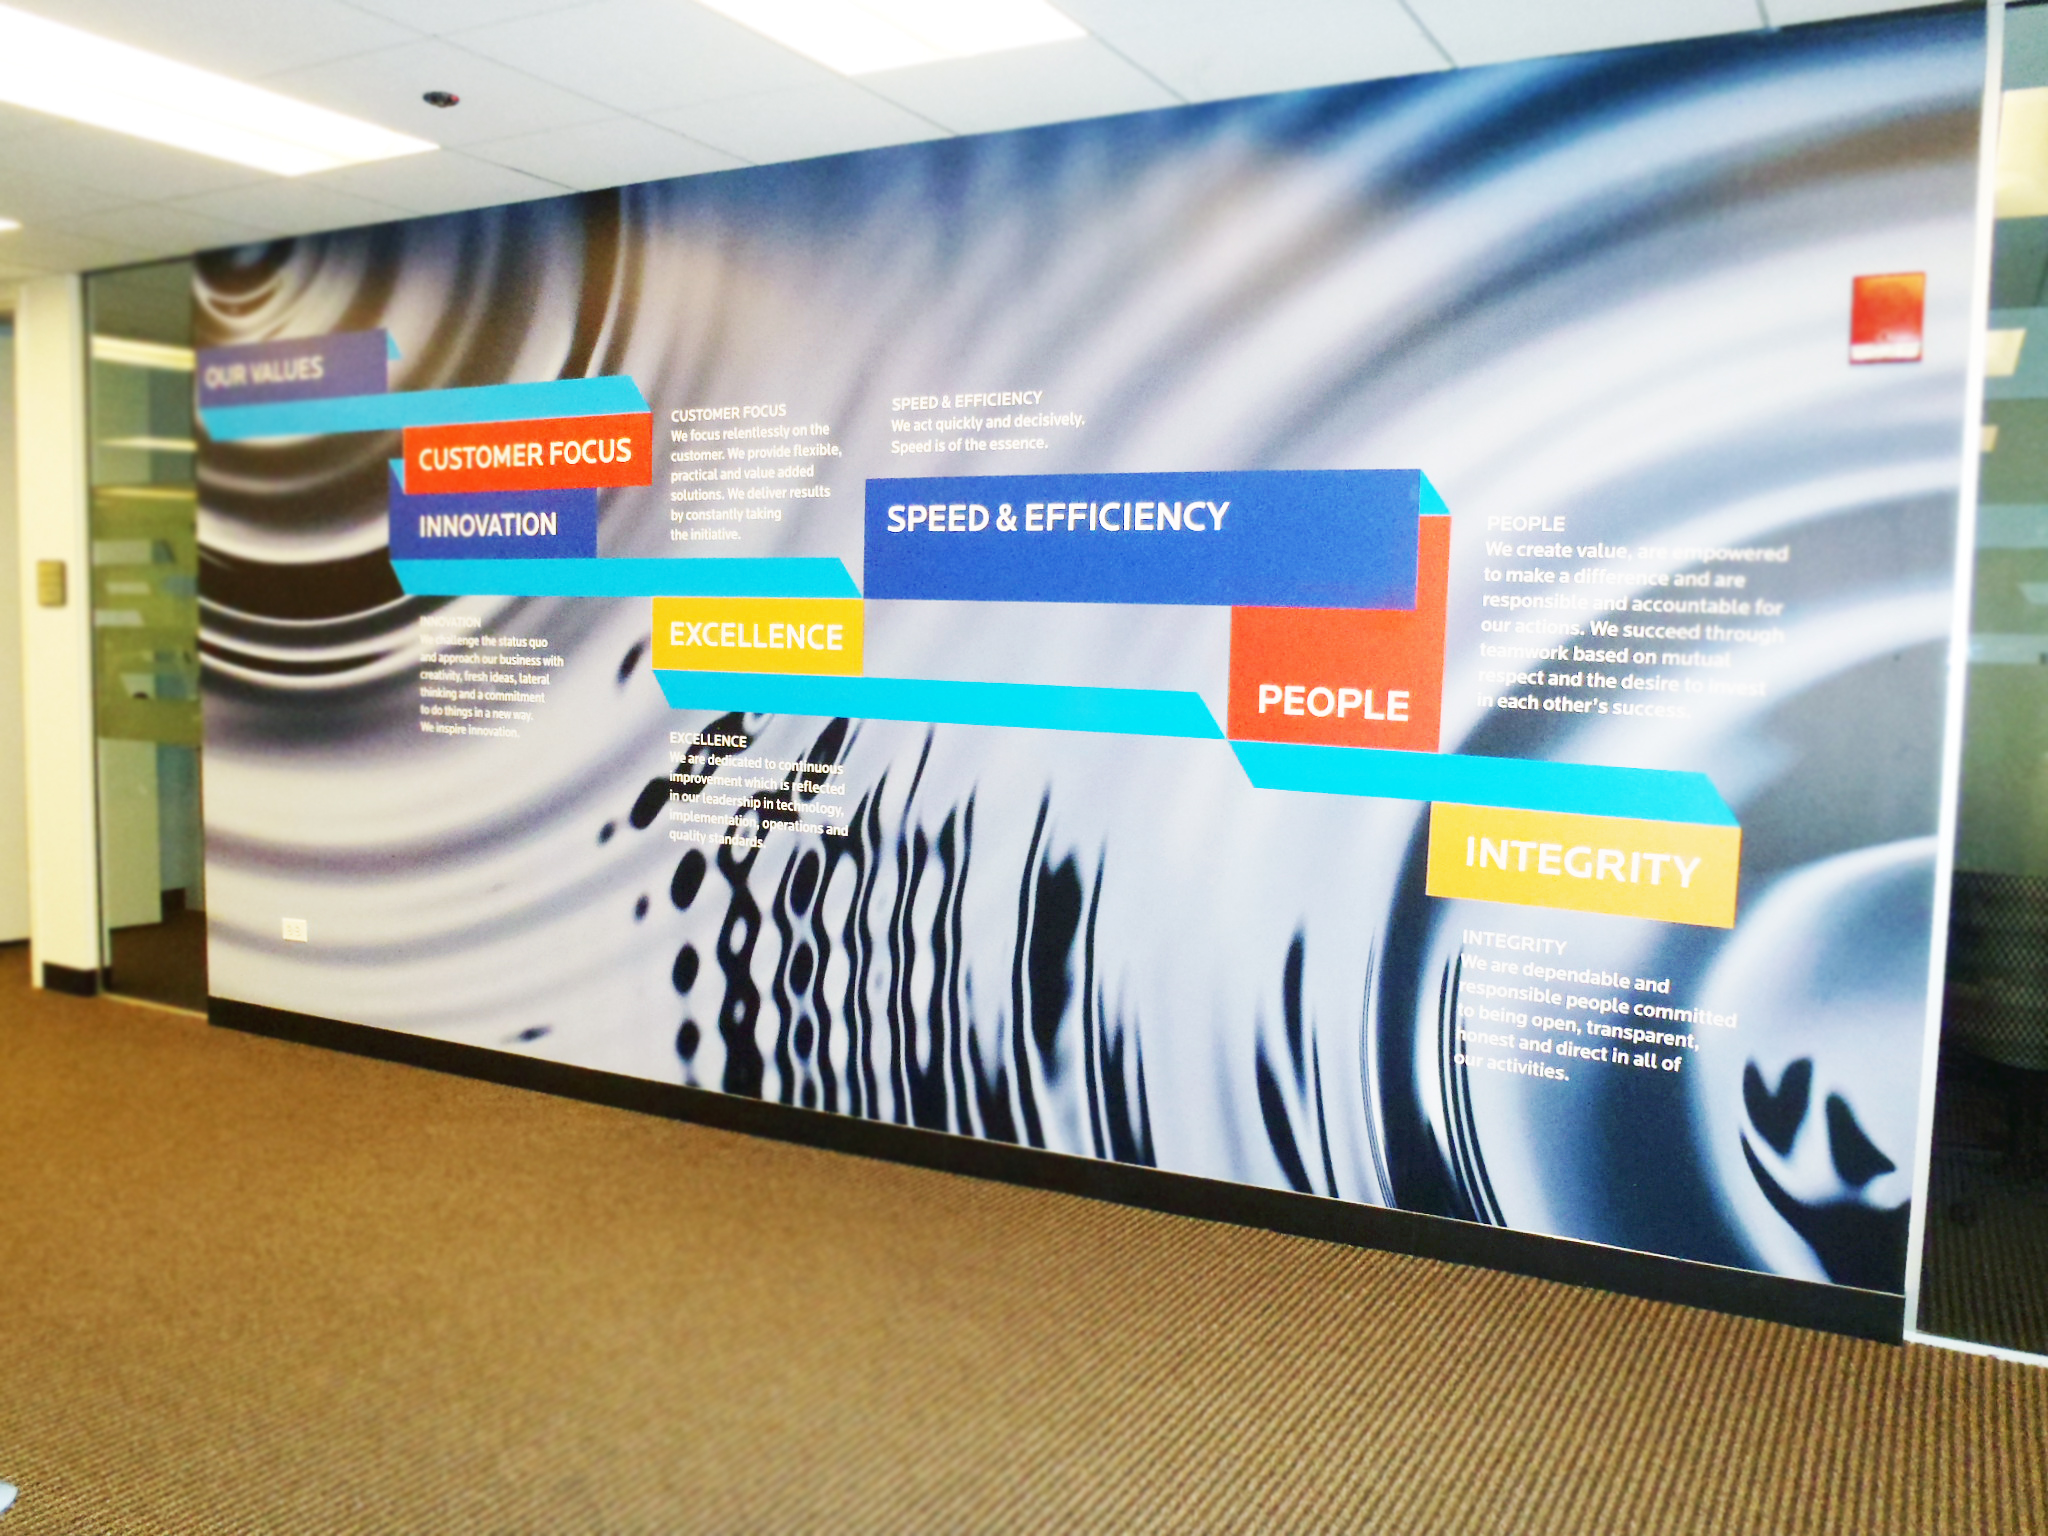 Xchanging printed wall graphic of company values